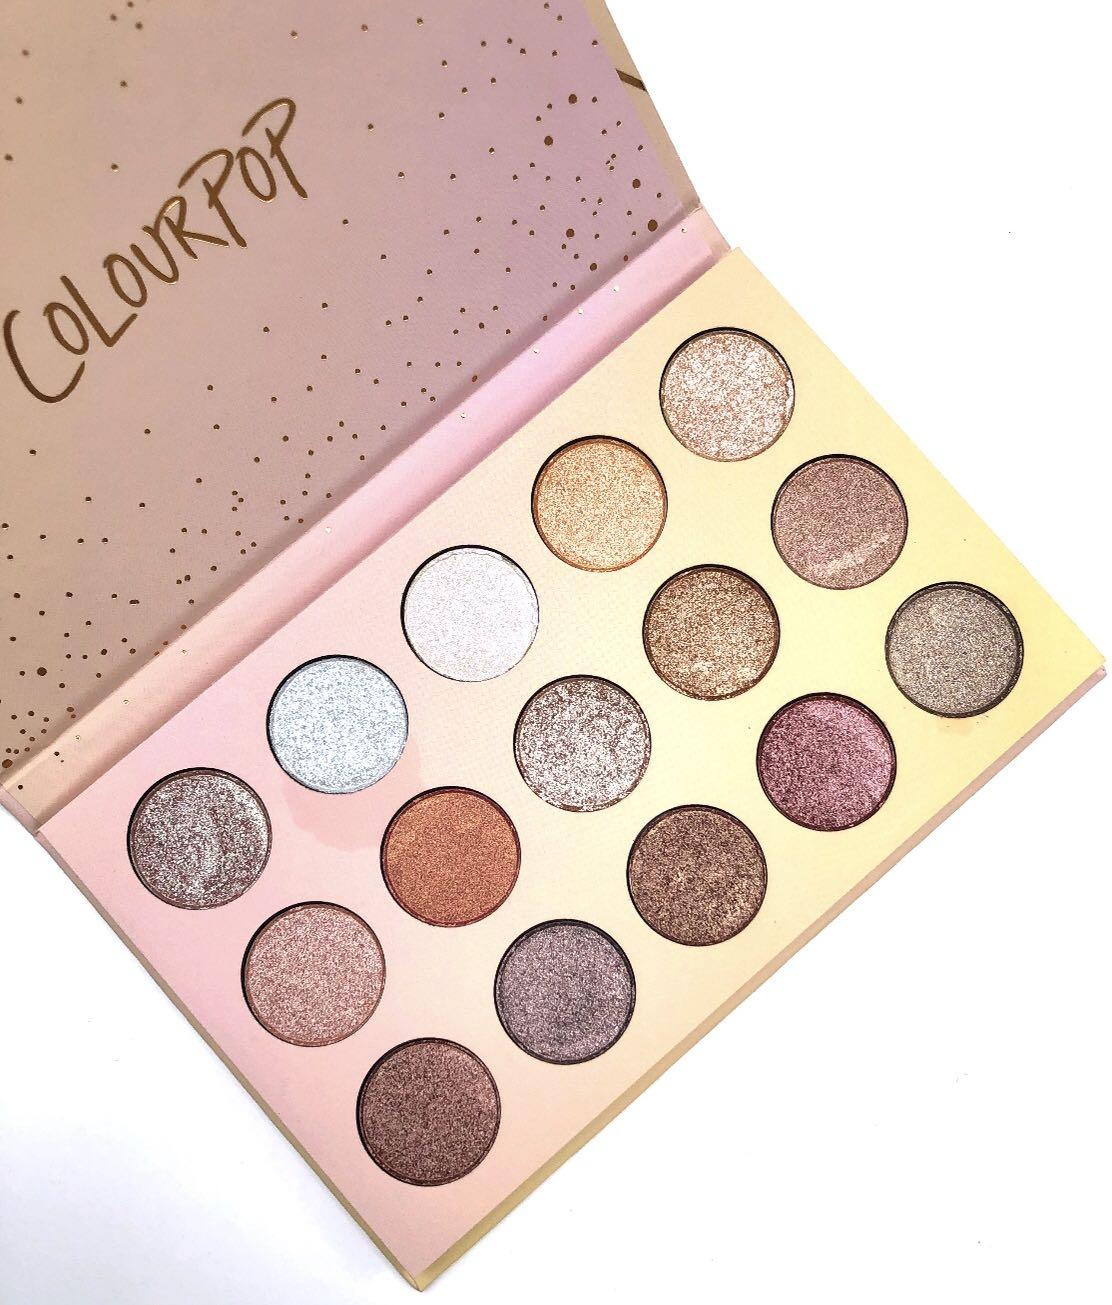 ColourPop Golden State Of Mind - Shadow Palette ❤️ AUTHENTIC ❤️ Imperfect